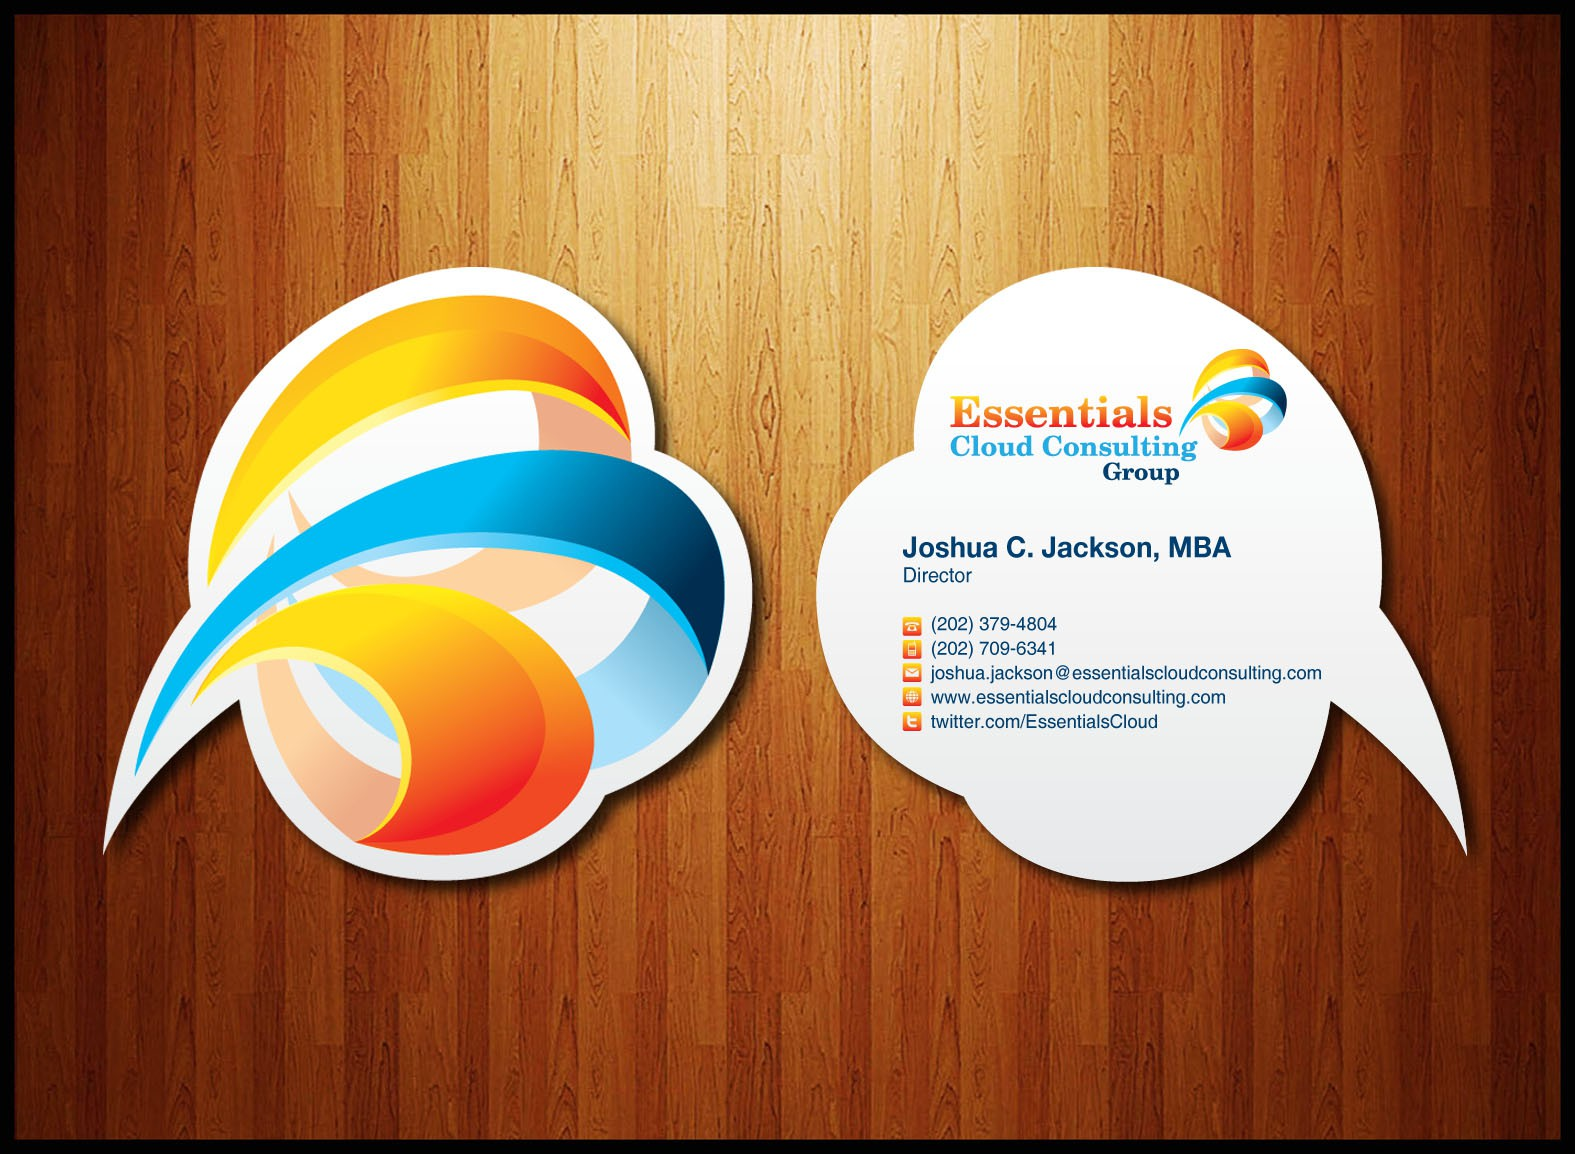 New stationery wanted for Essentials Cloud Consulting Group